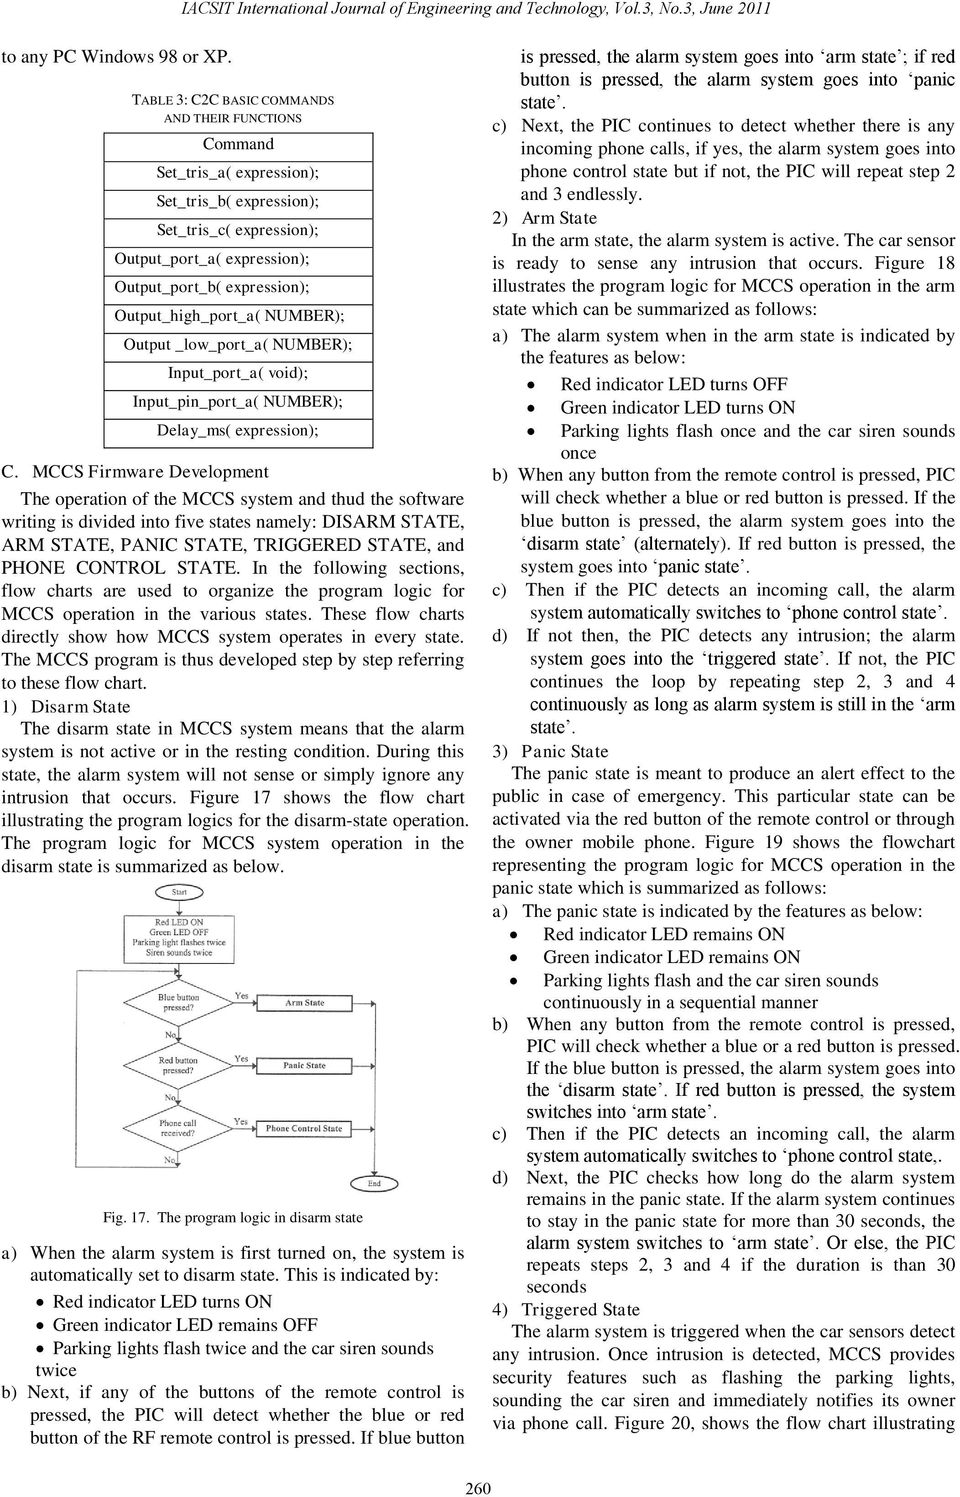 The Design of Mobile Control Car Security System - PDF